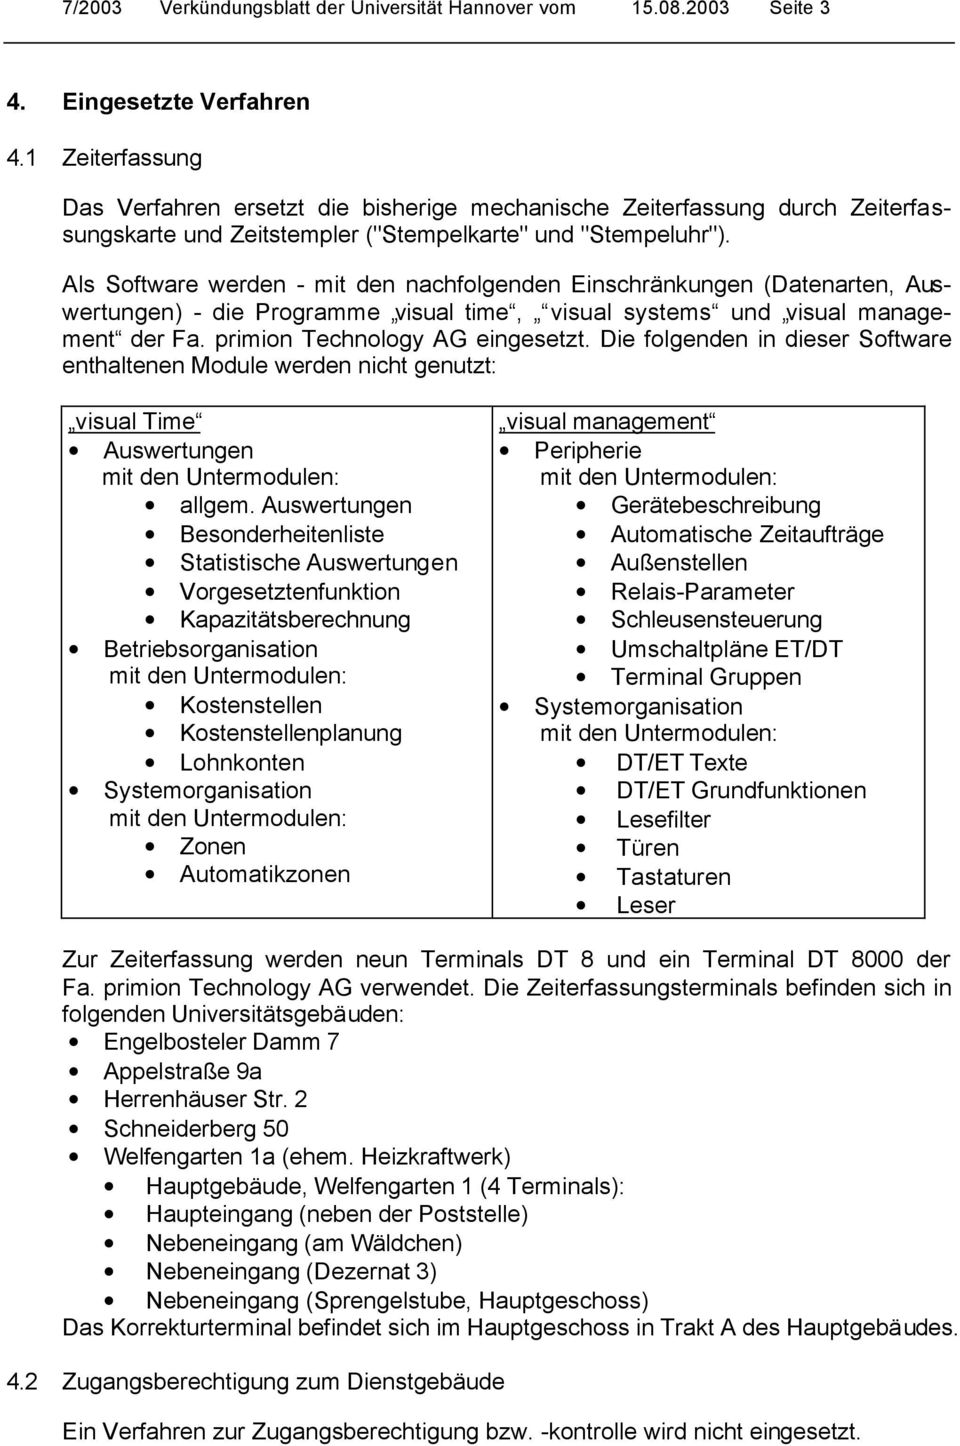 Als Software werden - mit den nachfolgenden Einschränkungen (Datenarten, Auswertungen) - die Programme visual time, visual systems und visual management der Fa. primion Technology AG eingesetzt.